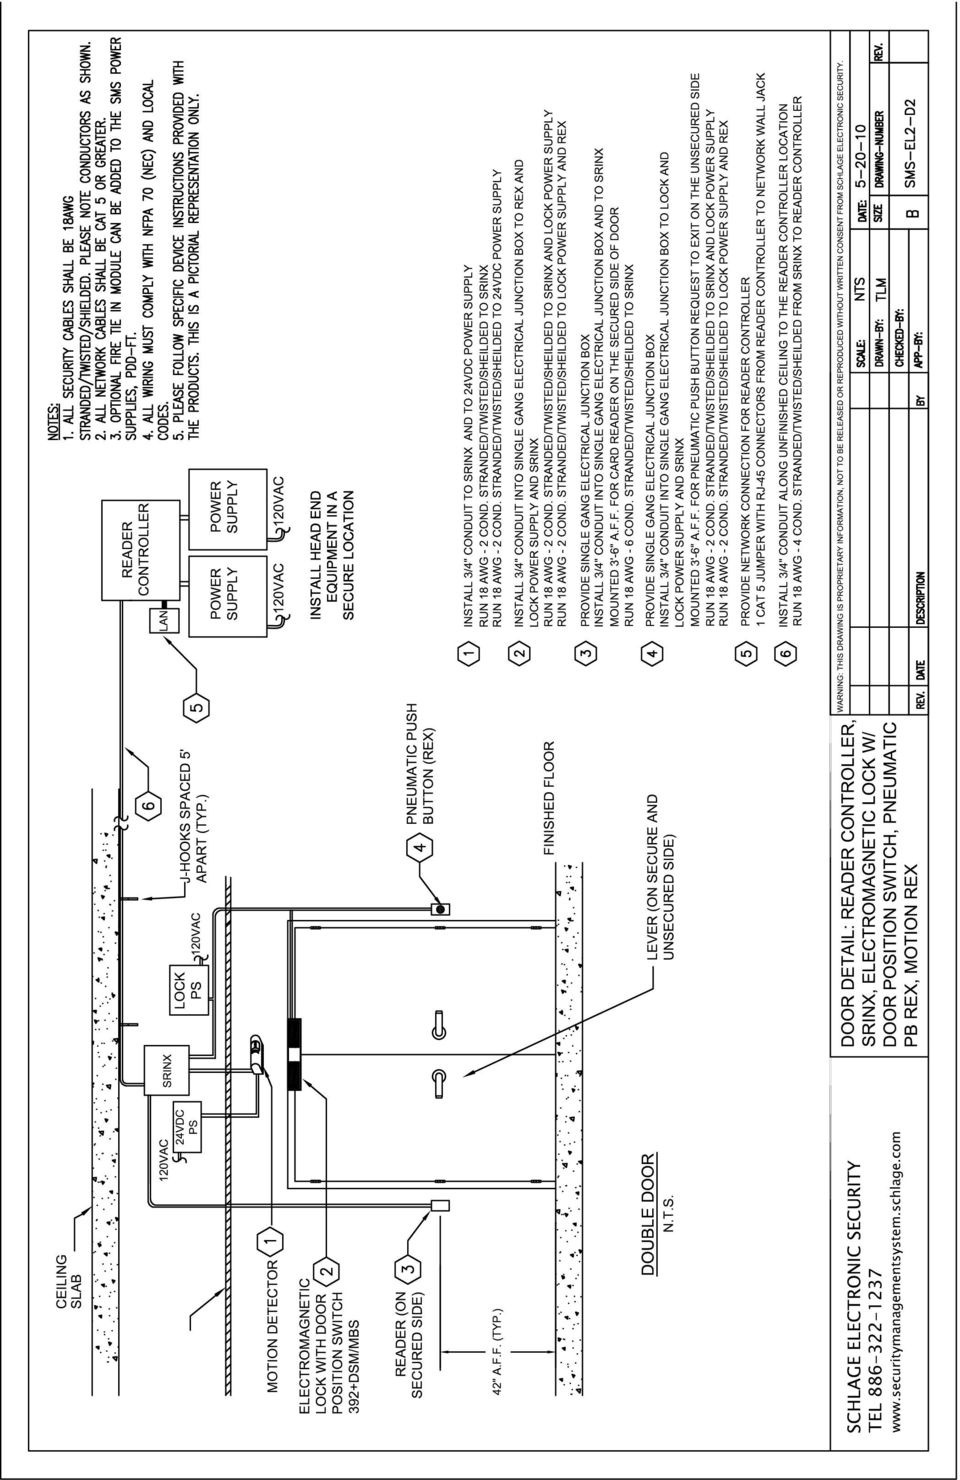 14 sms wiring portfolio section 3 mortise lock diagrams wiring details for  the reader controller and the srinx reader interface diagram # page #  sms-ml1-w1